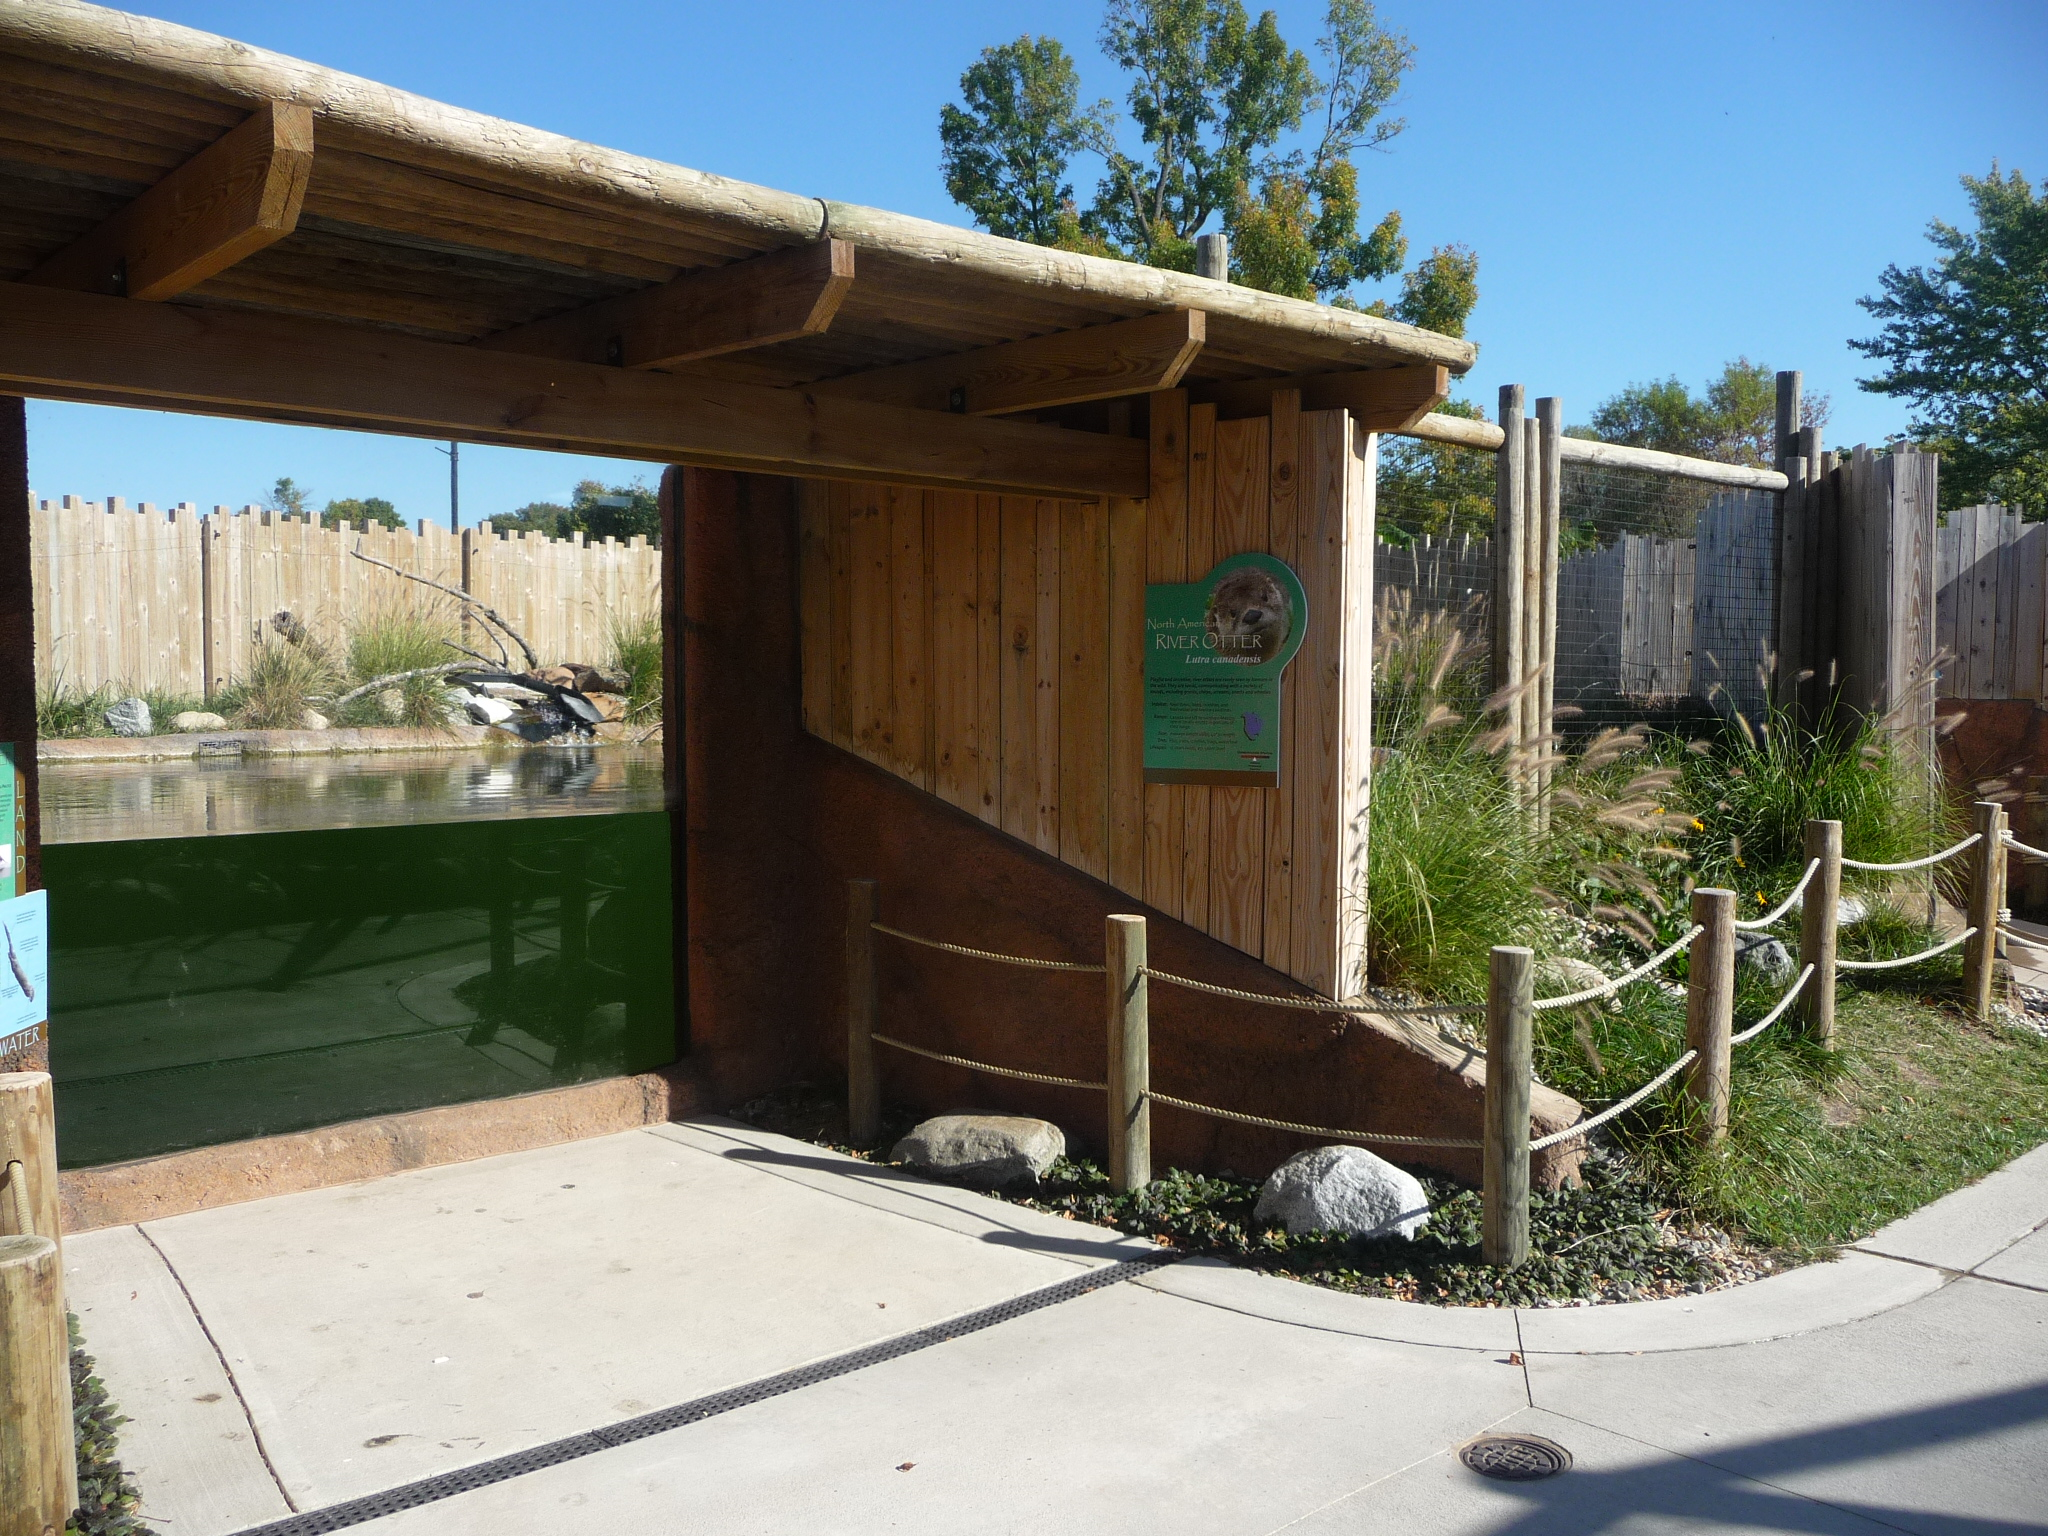 River Otter exhibit with front viewing